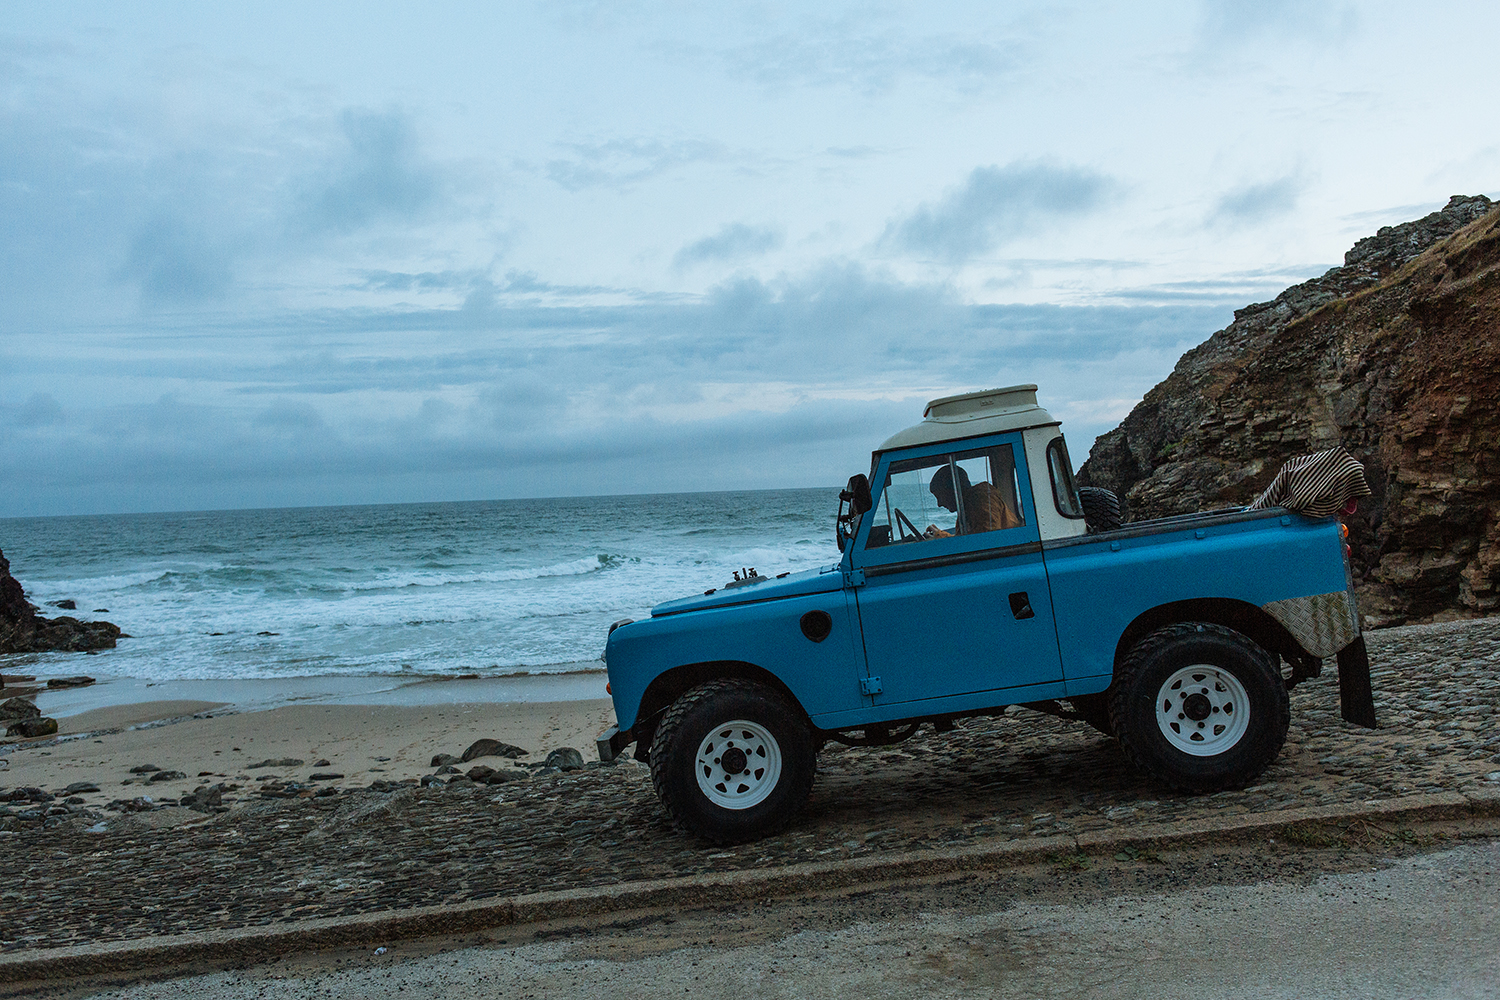 Tom Kay's Land Rover at the beach